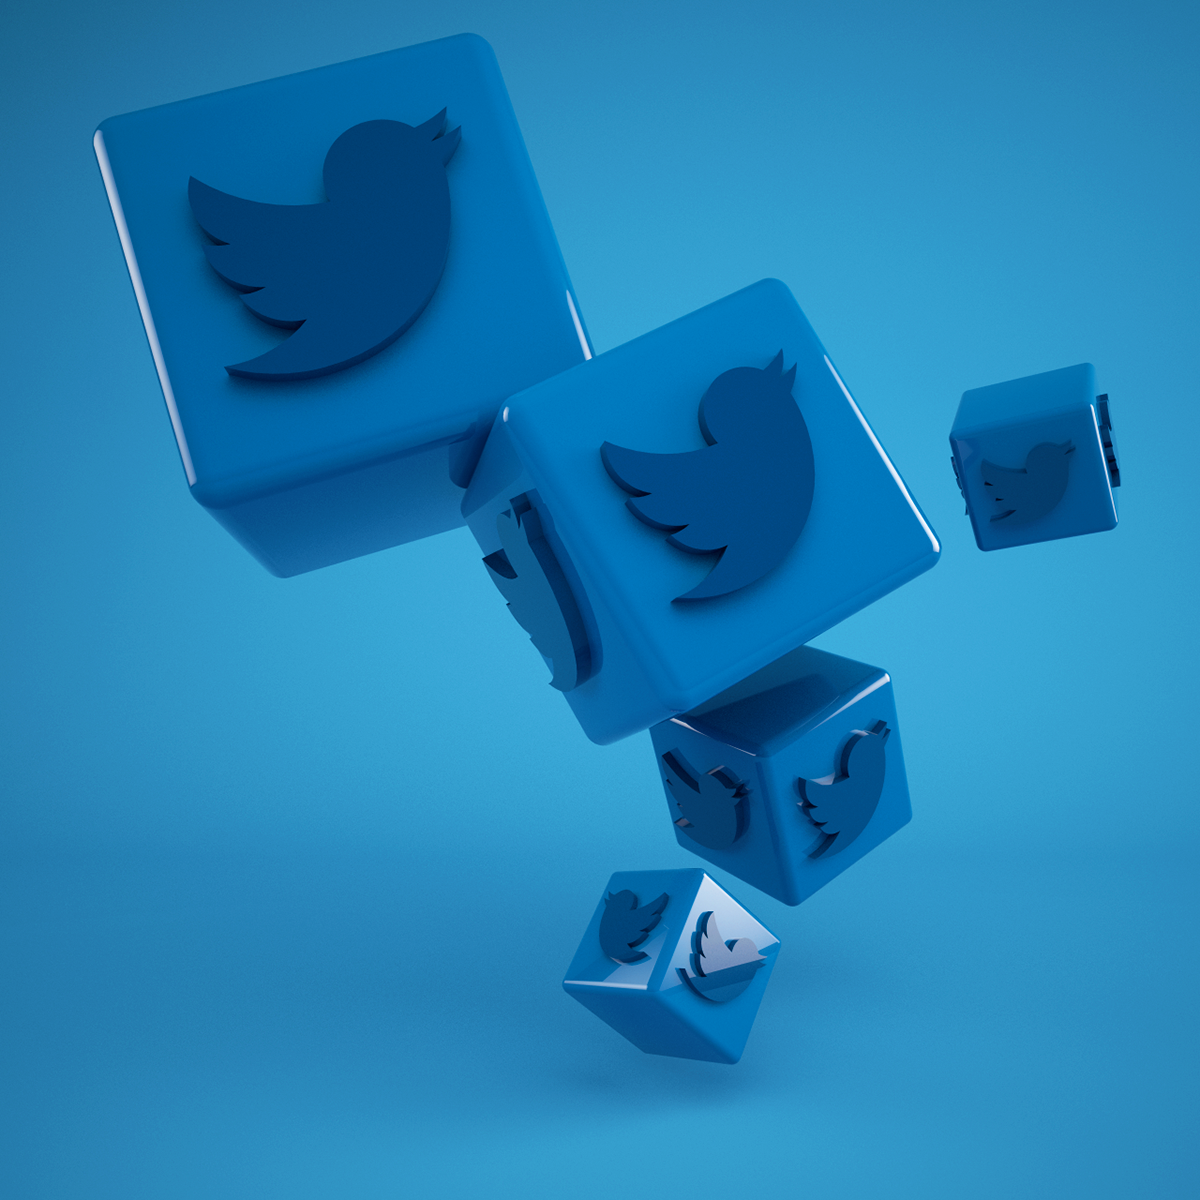 Redes Sociales on Behance